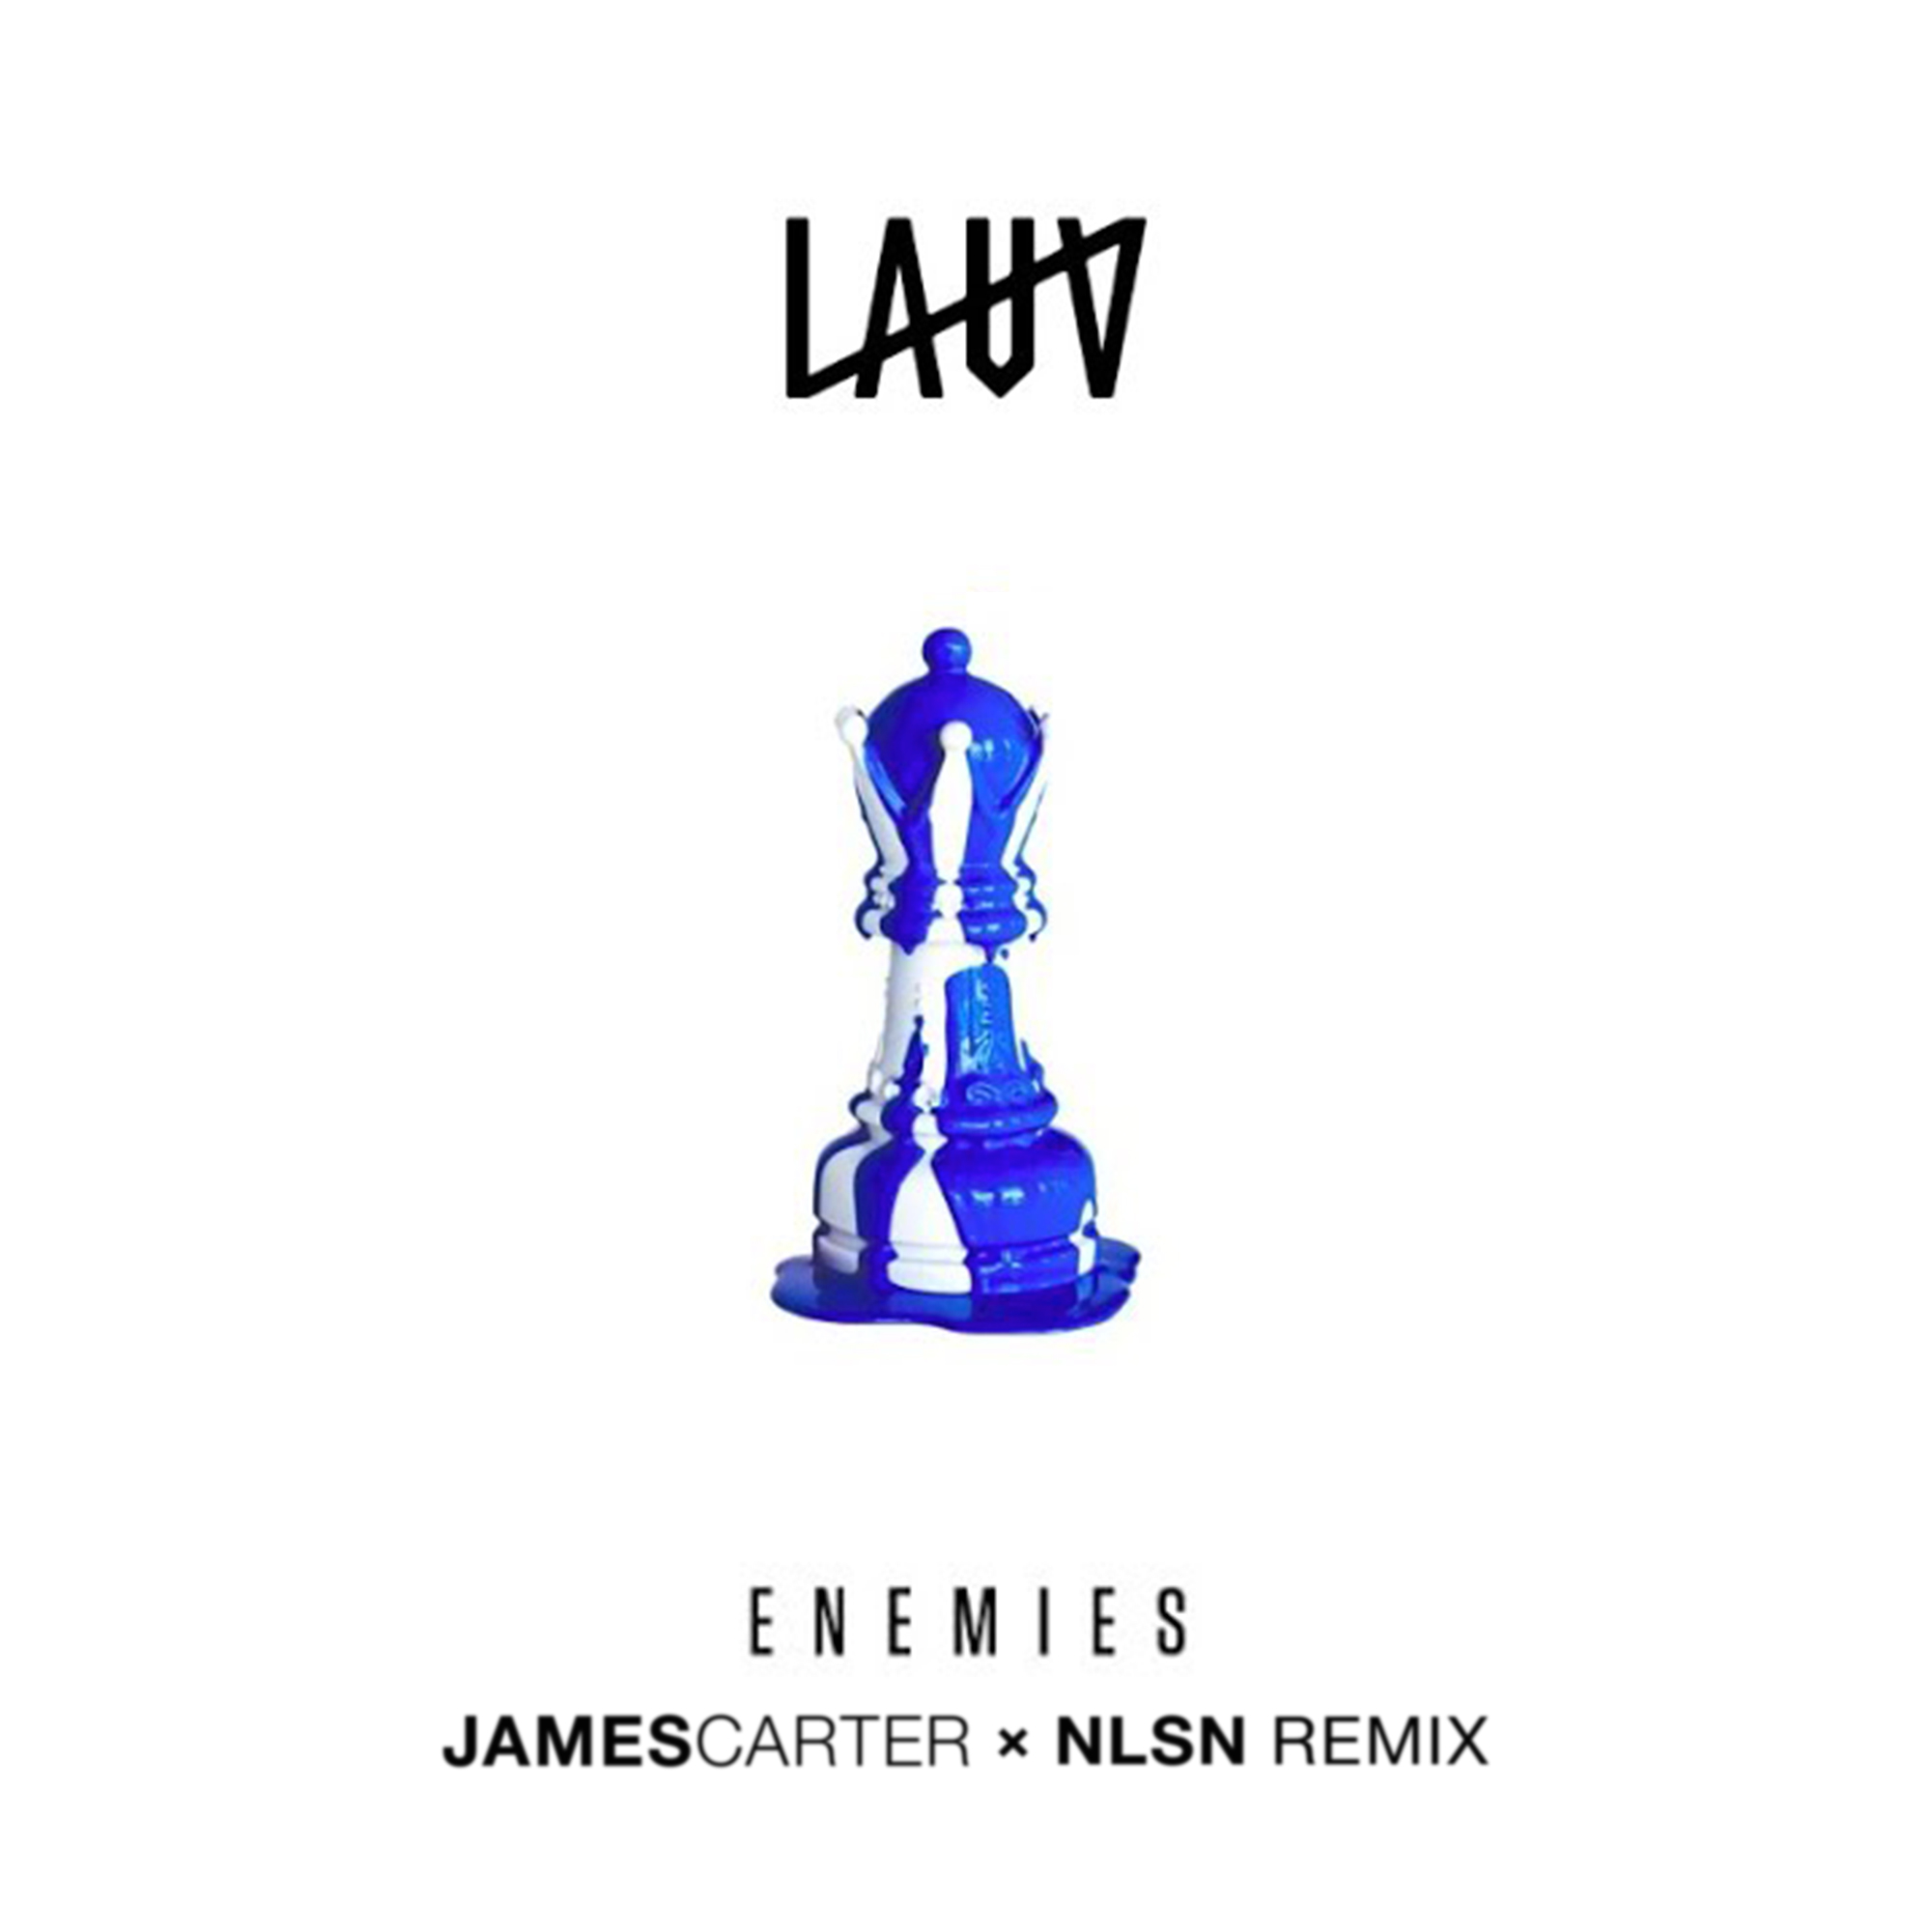 Lauv - Enemies (James Carter x NLSN Remix)